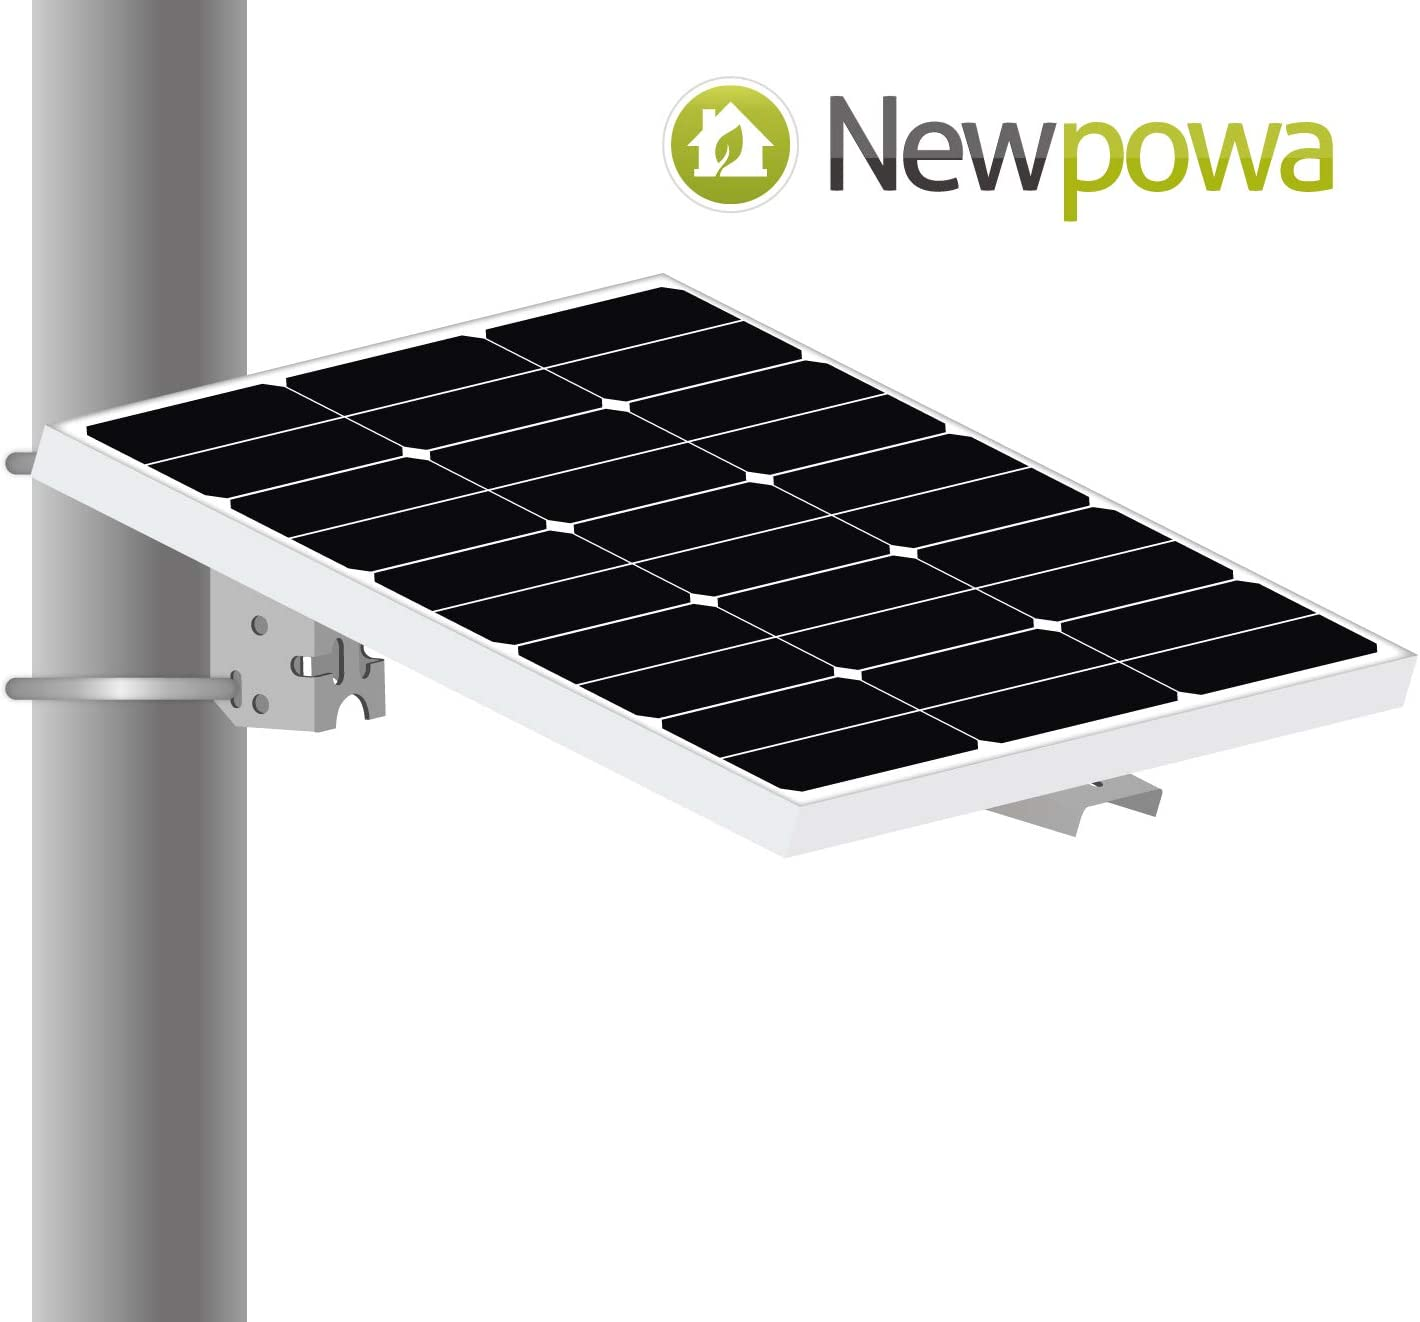 Newpowa Universal Solar Panel Mounting Bracket Single Arm Pole, Wall and Ground Mounts Up to 60W